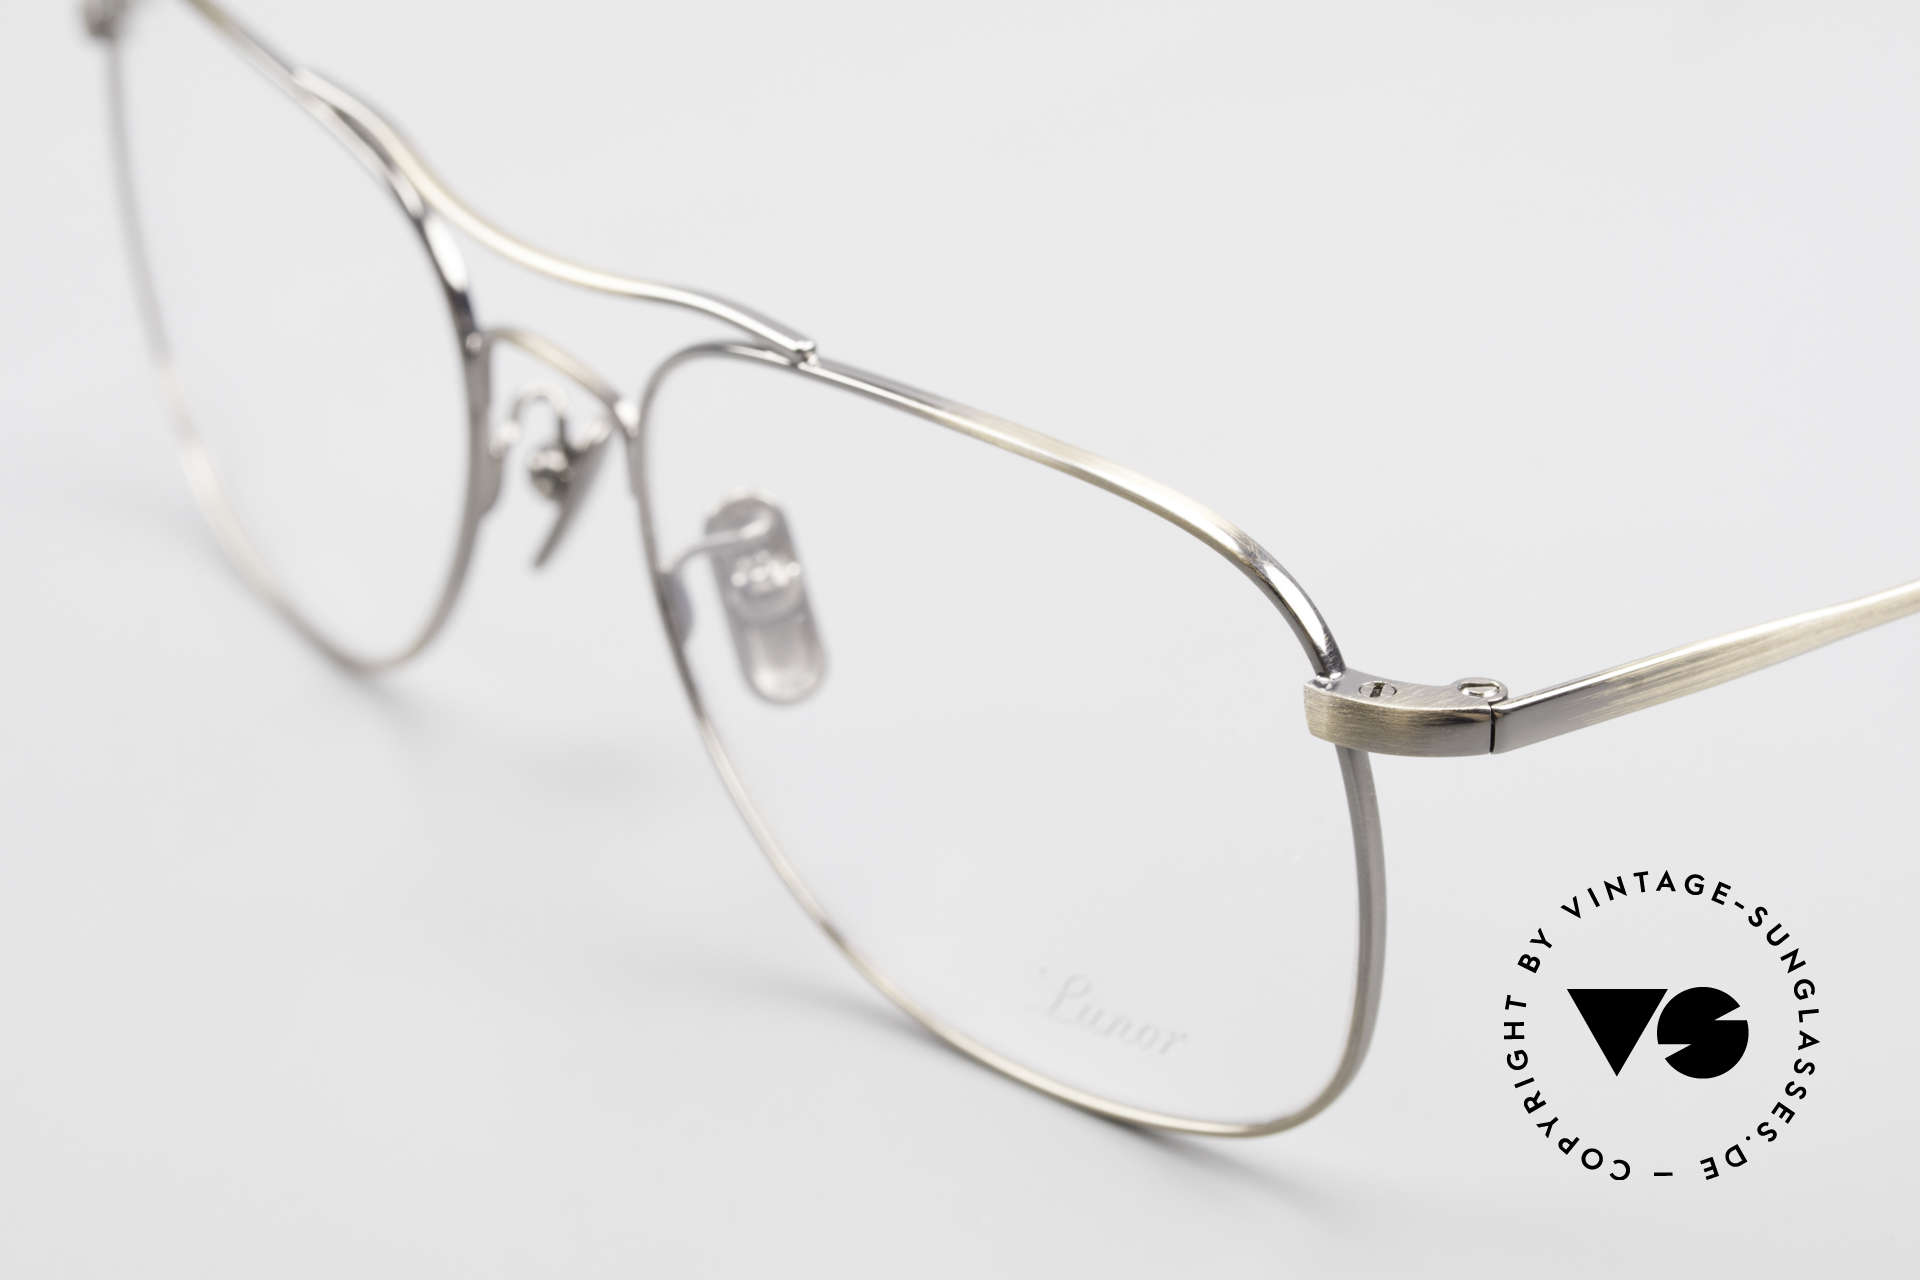 Lunor Aviator II P4 AG Classy Men's Eyeglass-Frame, from the latest collection, but in a well-known quality, Made for Men